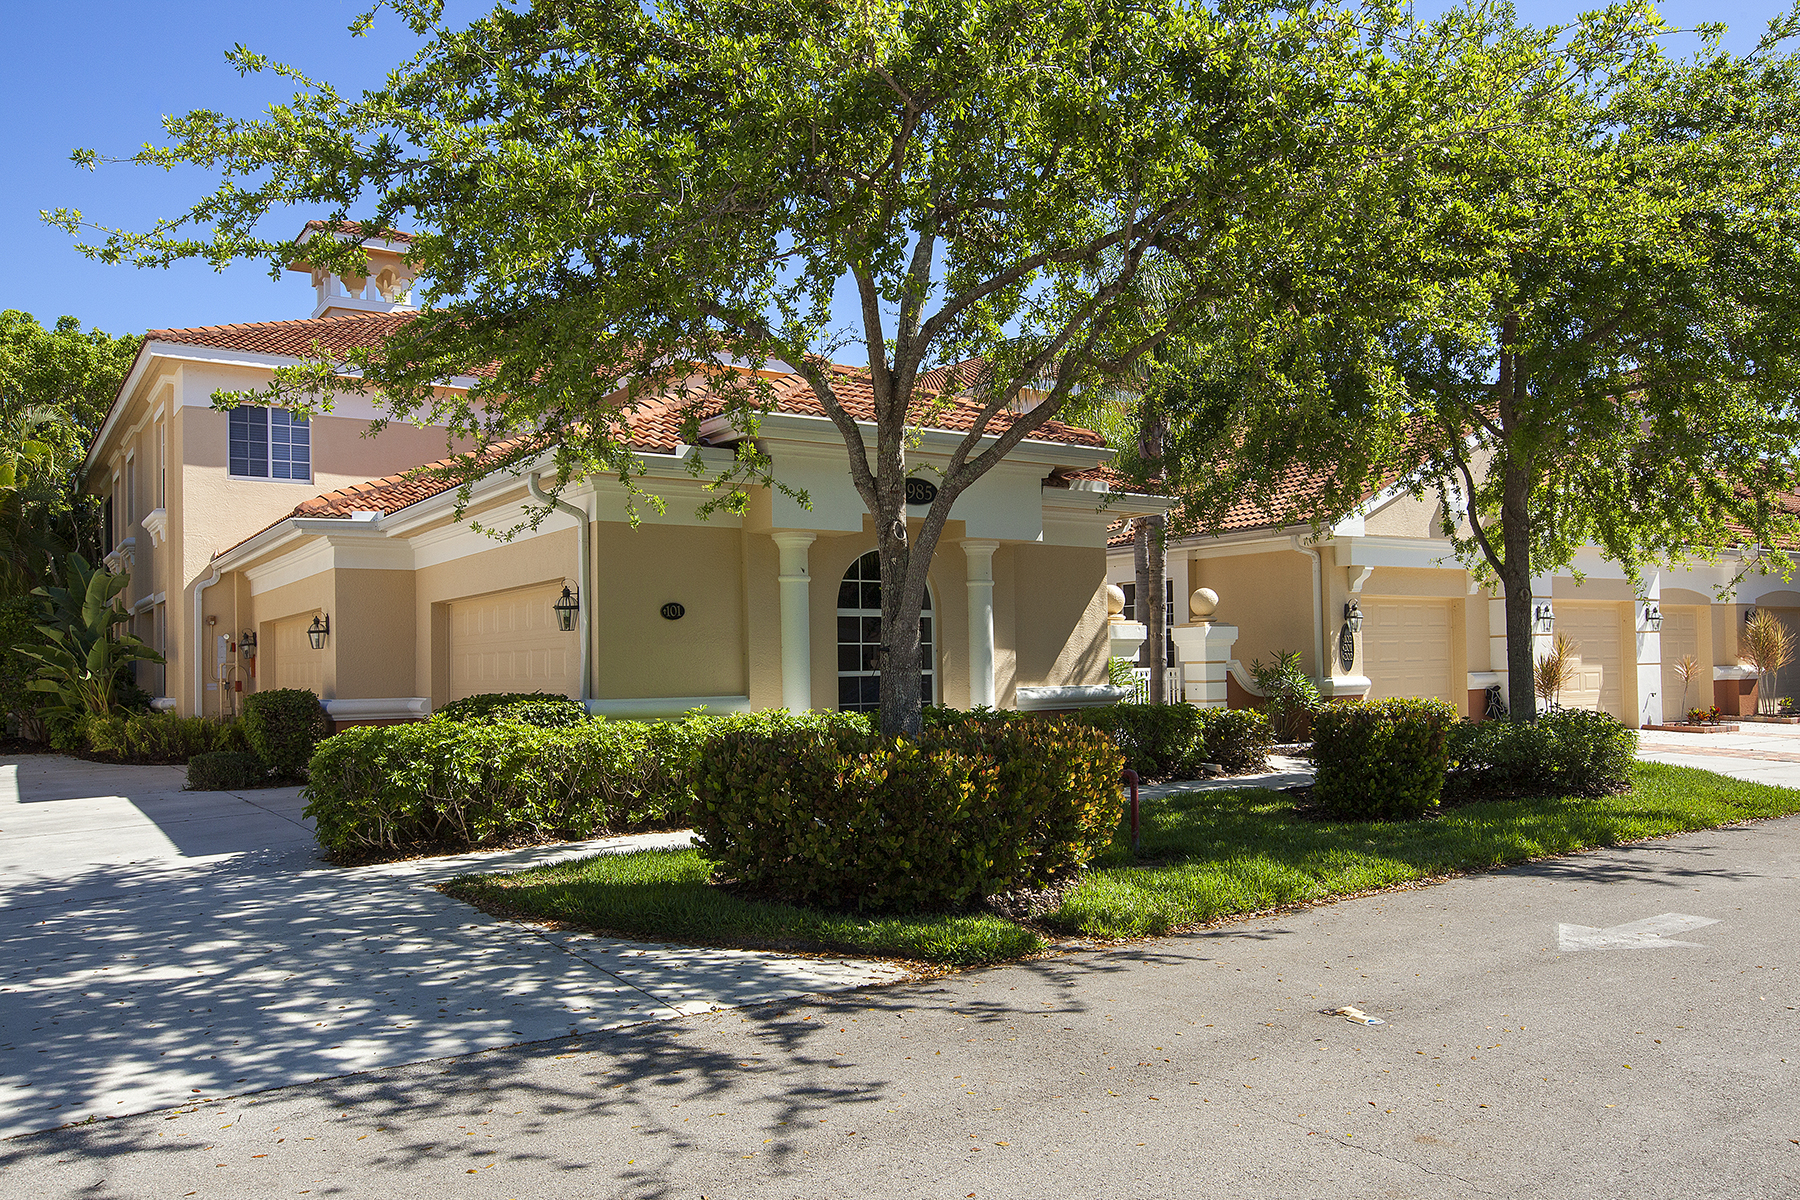 Condominio por un Venta en FIDDLER'S CREEK - DEER CROSSING 3985 Deer Crossing Ct 101 Naples, Florida, 34114 Estados Unidos